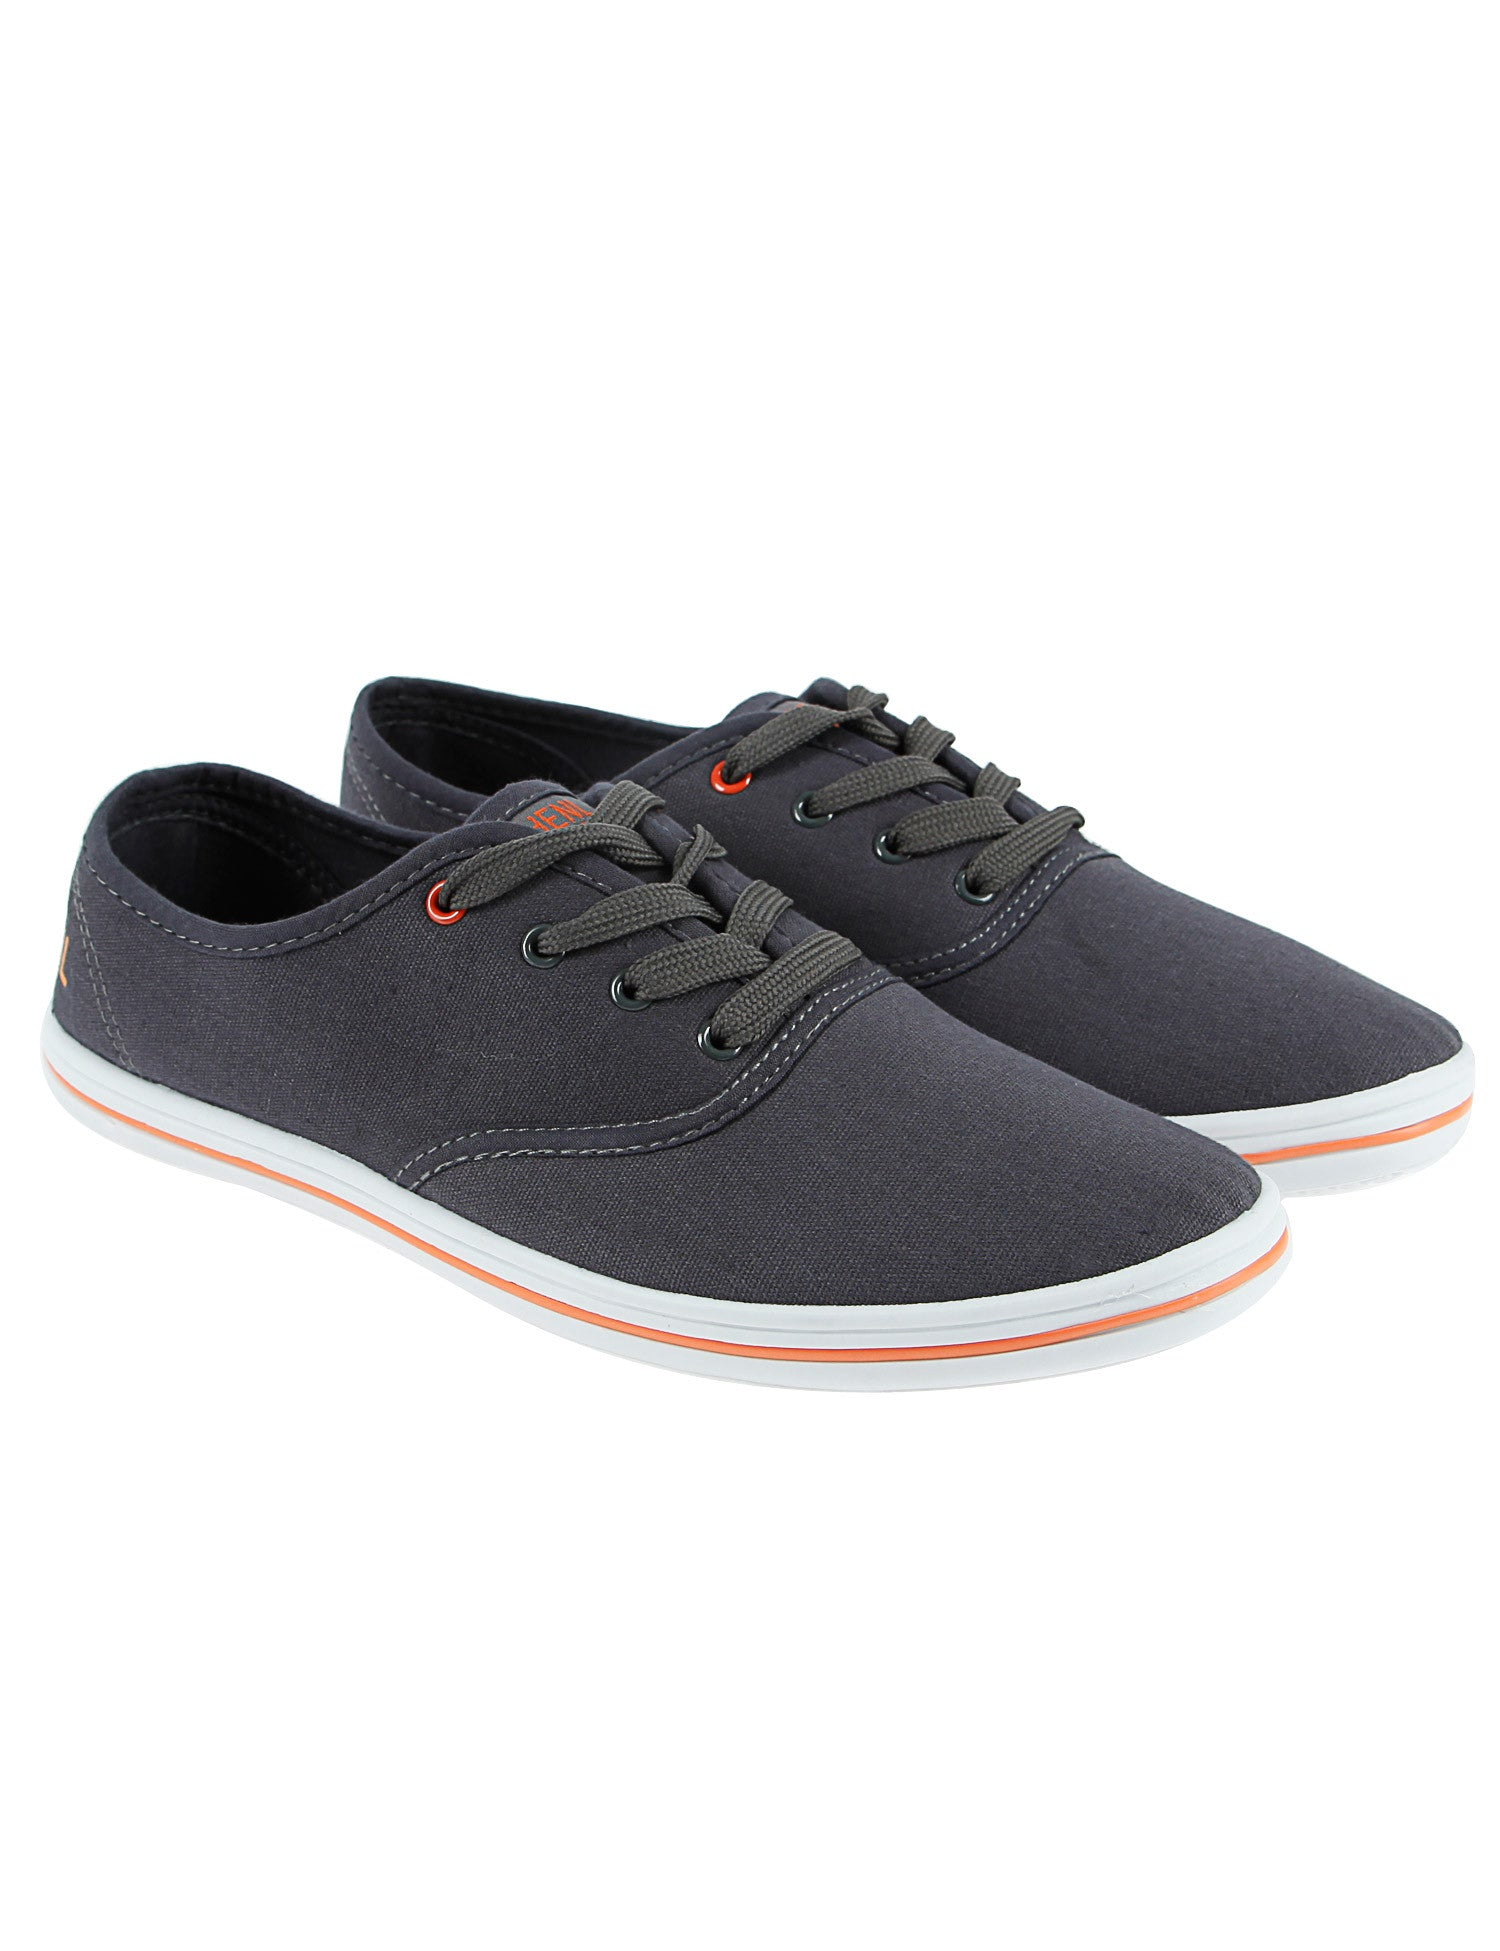 Henleys Bevan Shoes HFW00035 Grey